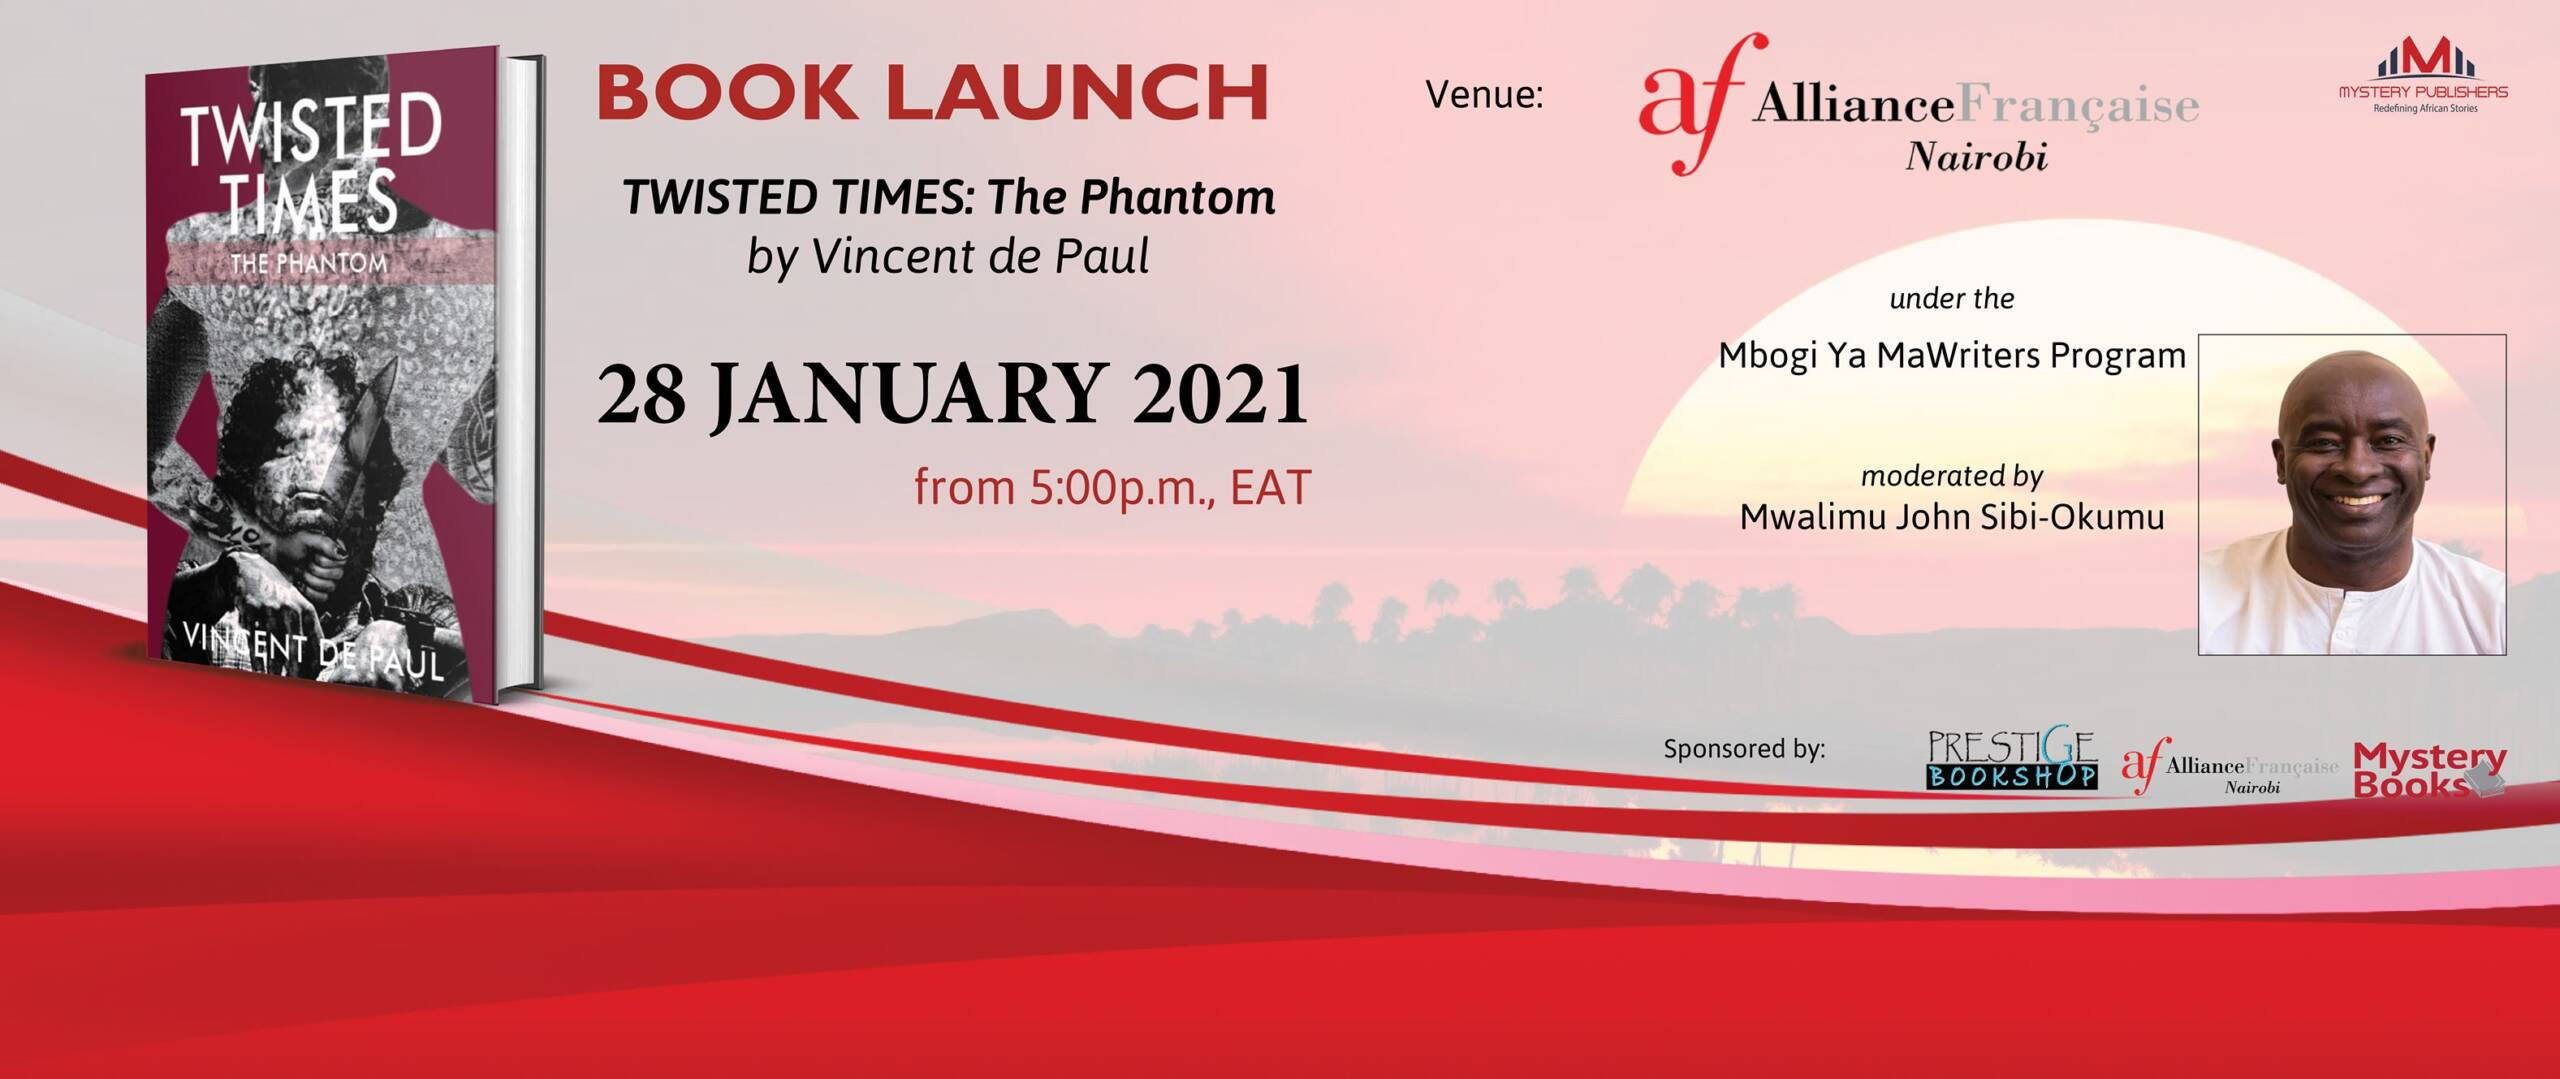 Book Launch   Twisted Times: The Phantom